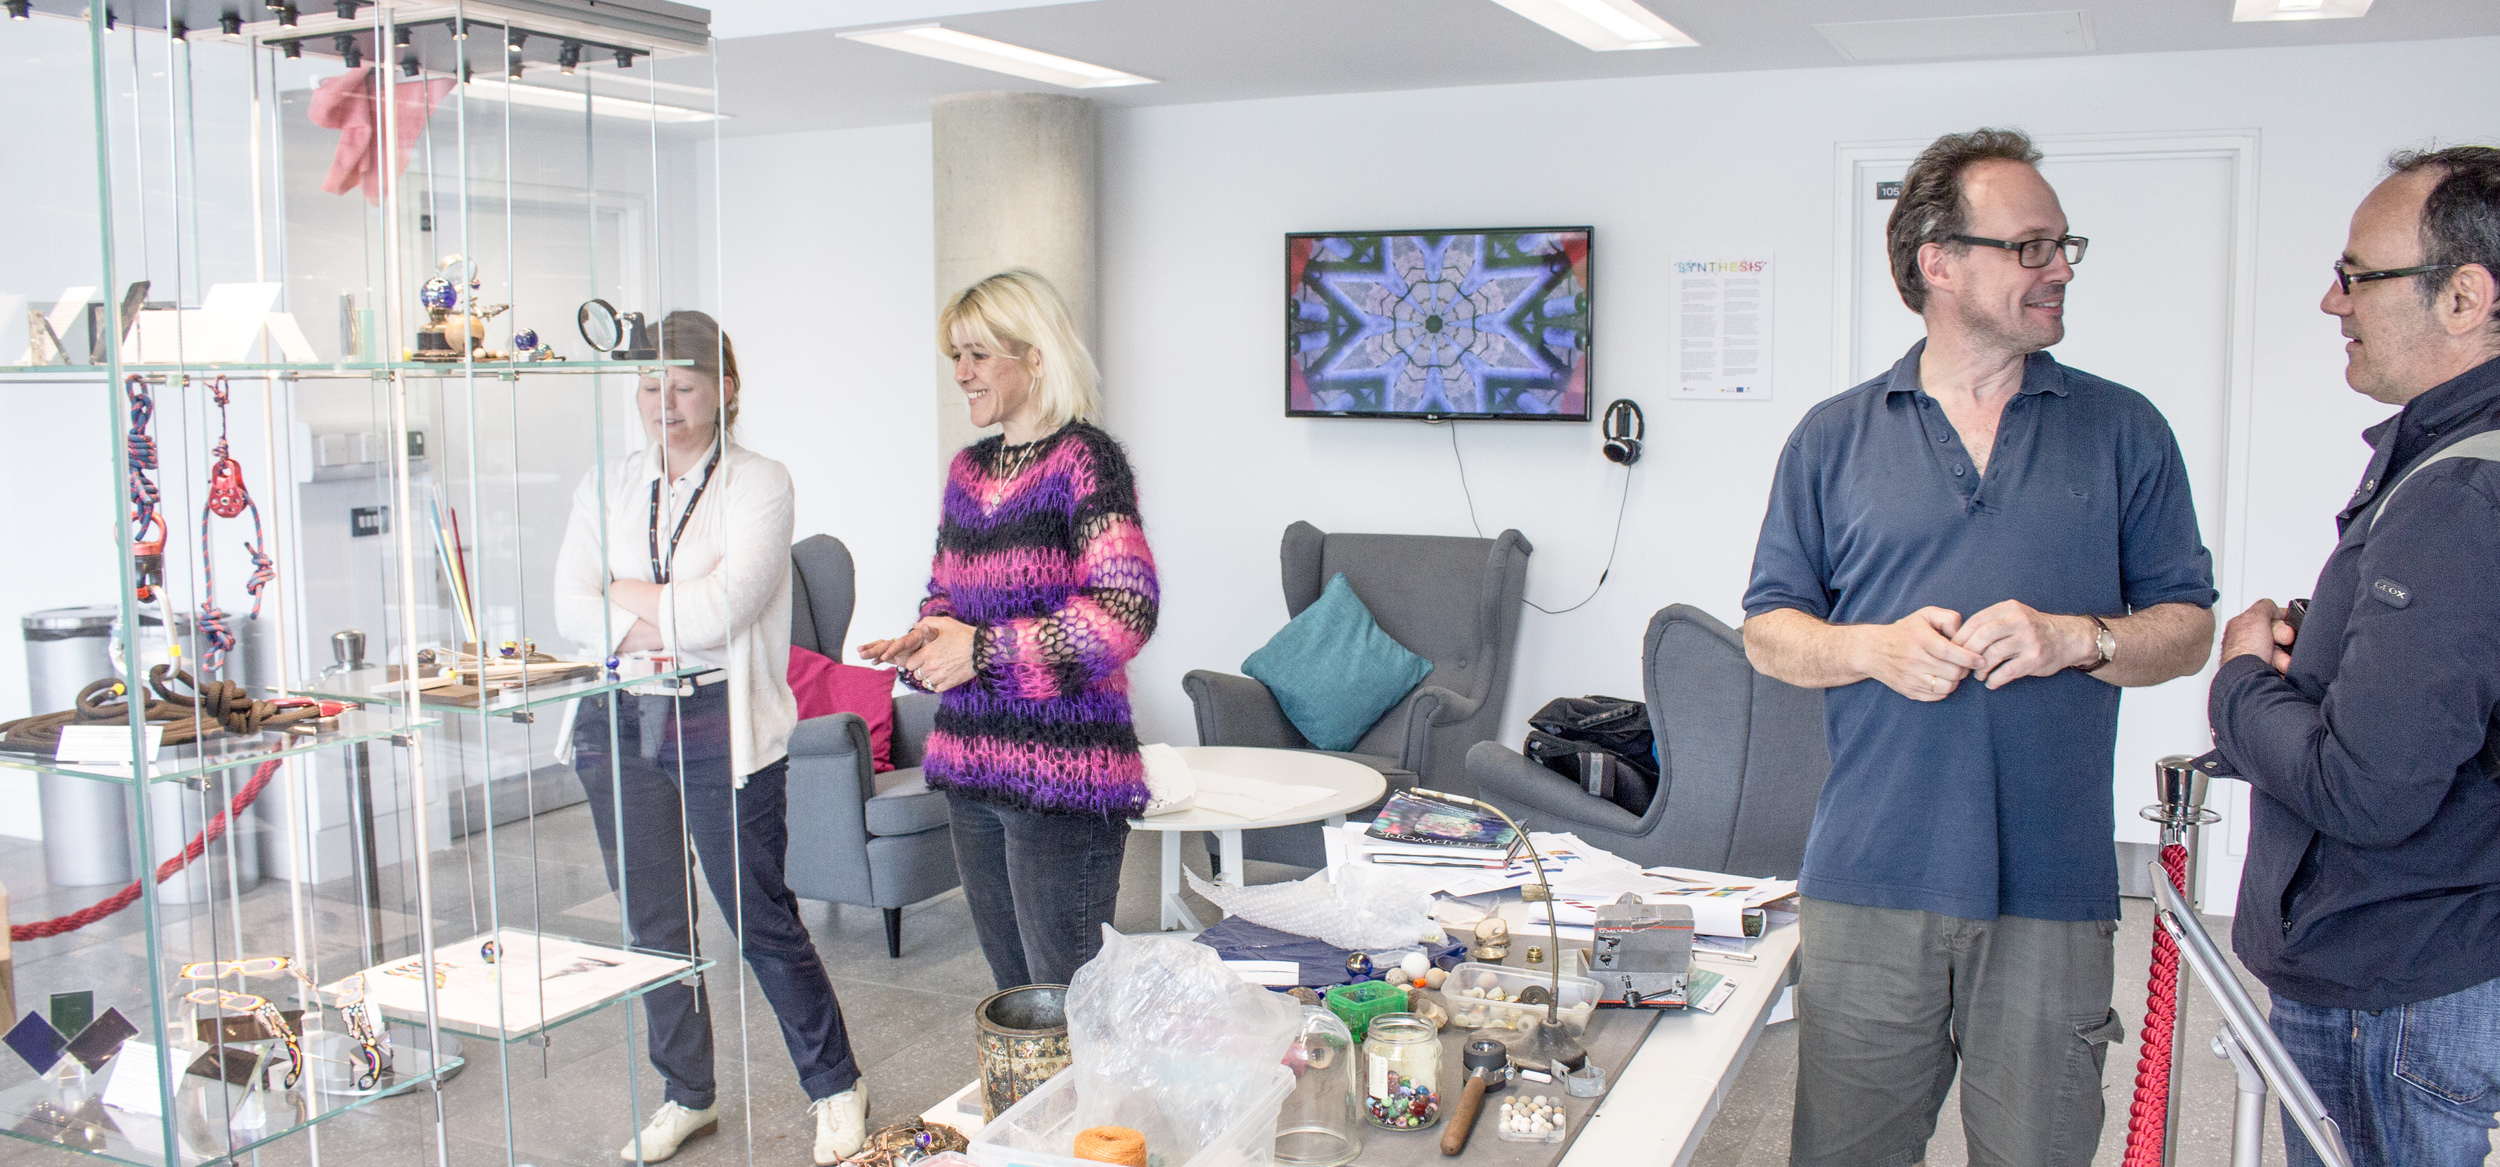 Creating the Llif/Flow 'display' at Pontio: Jonathan and Lisa in the centre taking a break from creating the display together (Lisa talking aesthetics, Jonathan talking Langmuir Circulation)